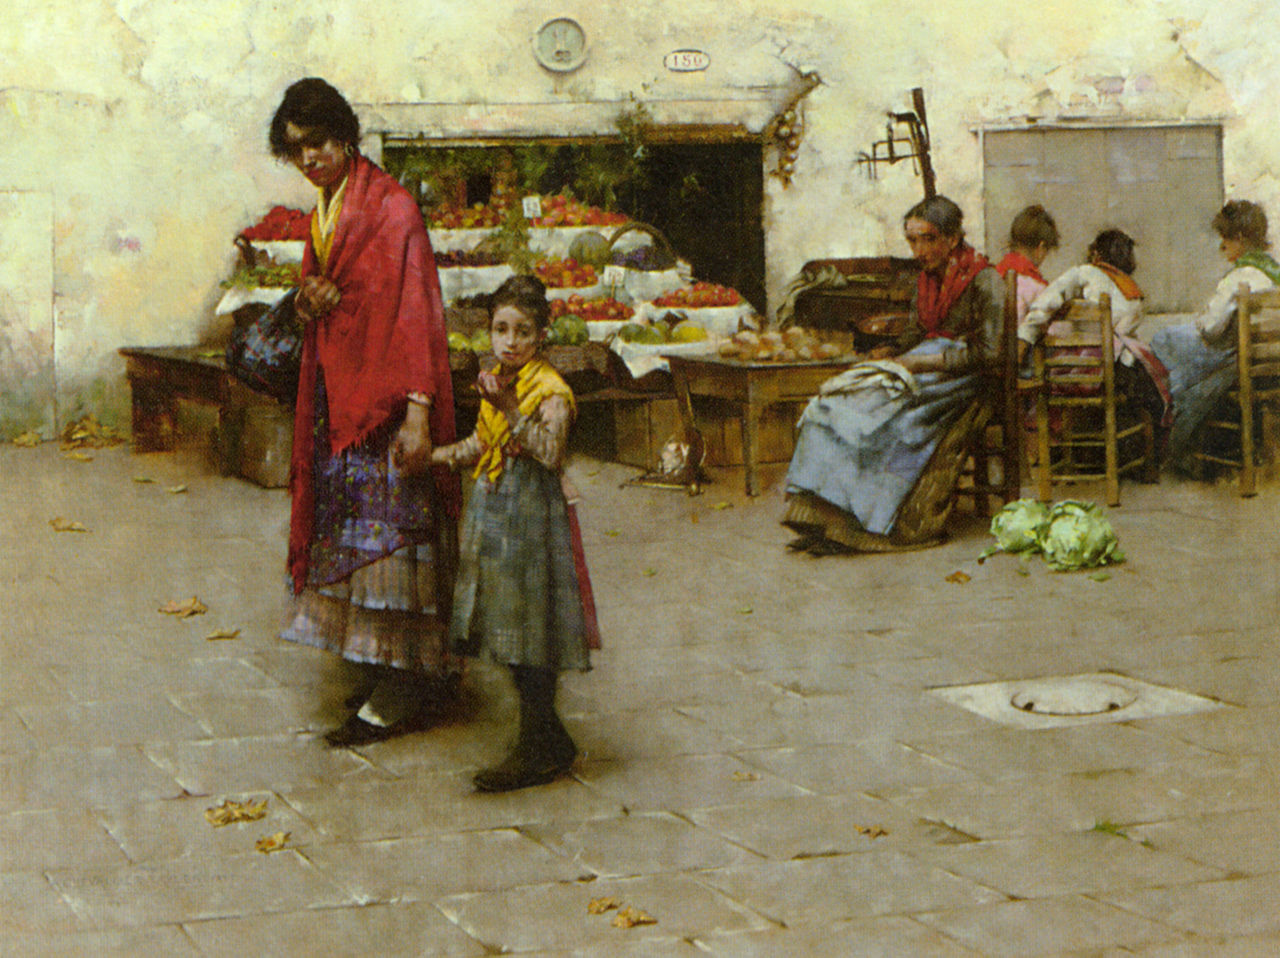 Taylor Albert Chevallier A Day at the Market 1887 Oil On Canvas.jpg